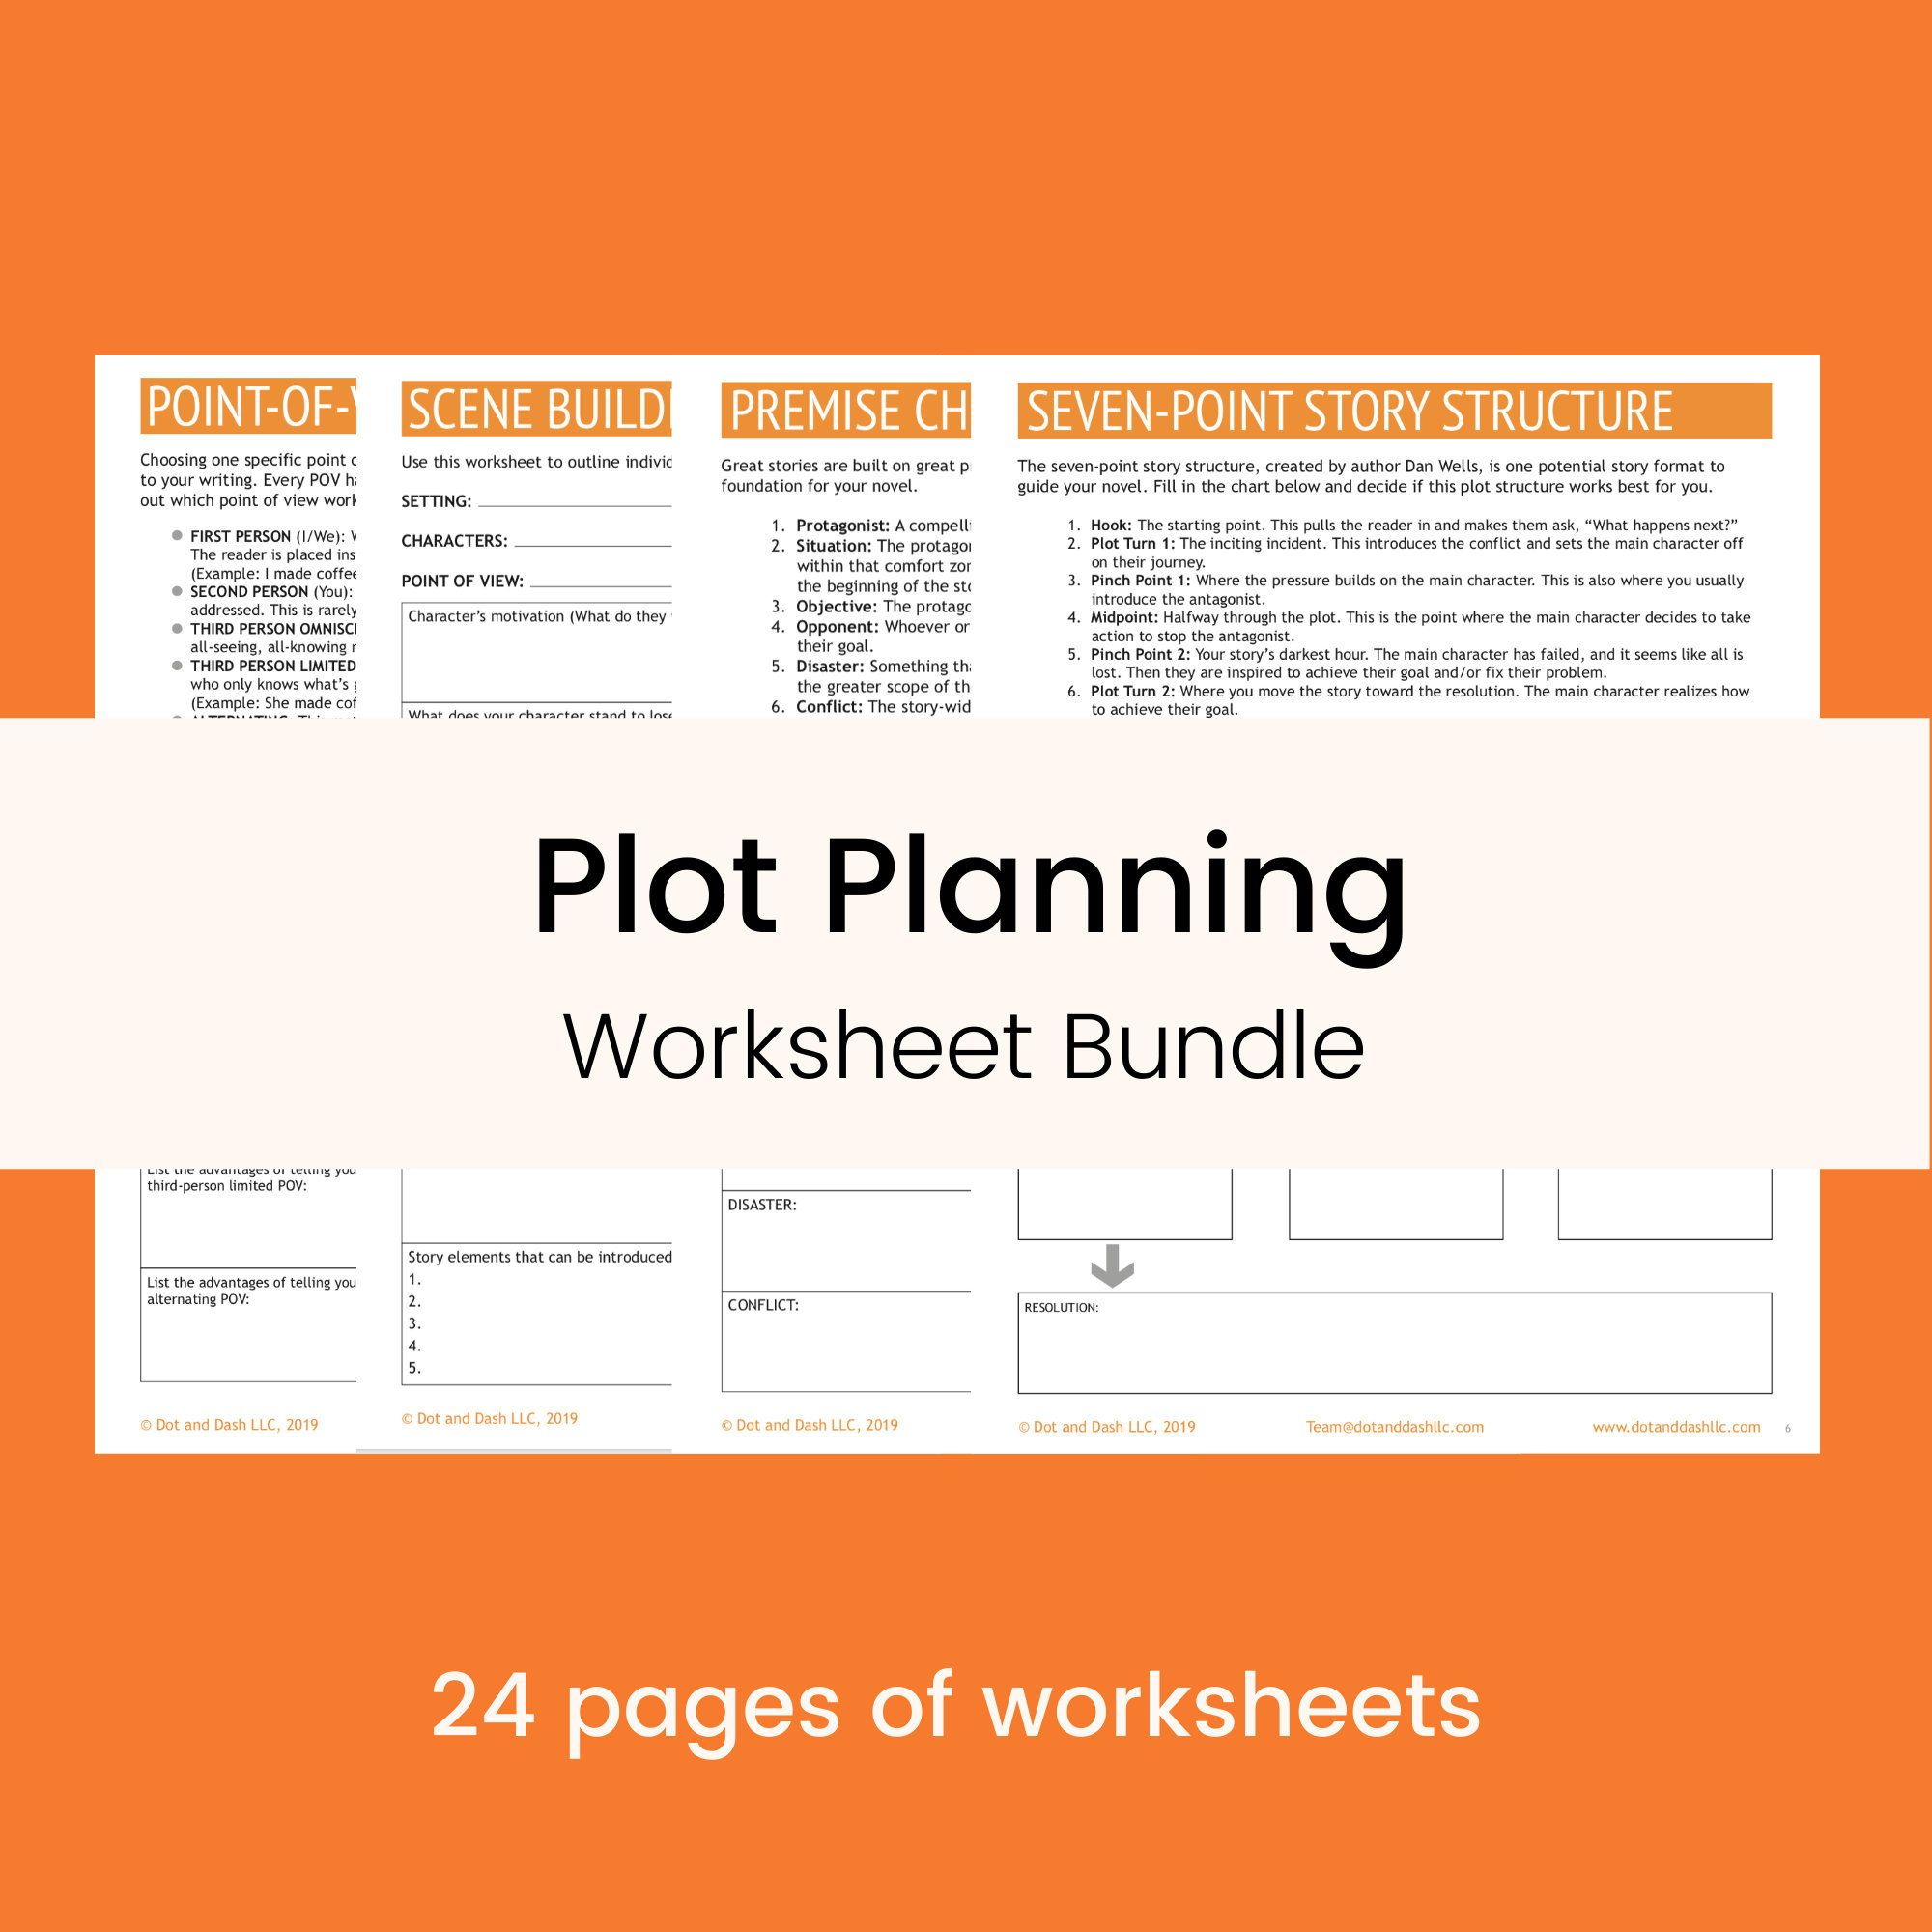 Plot Planning Worksheet Bundle